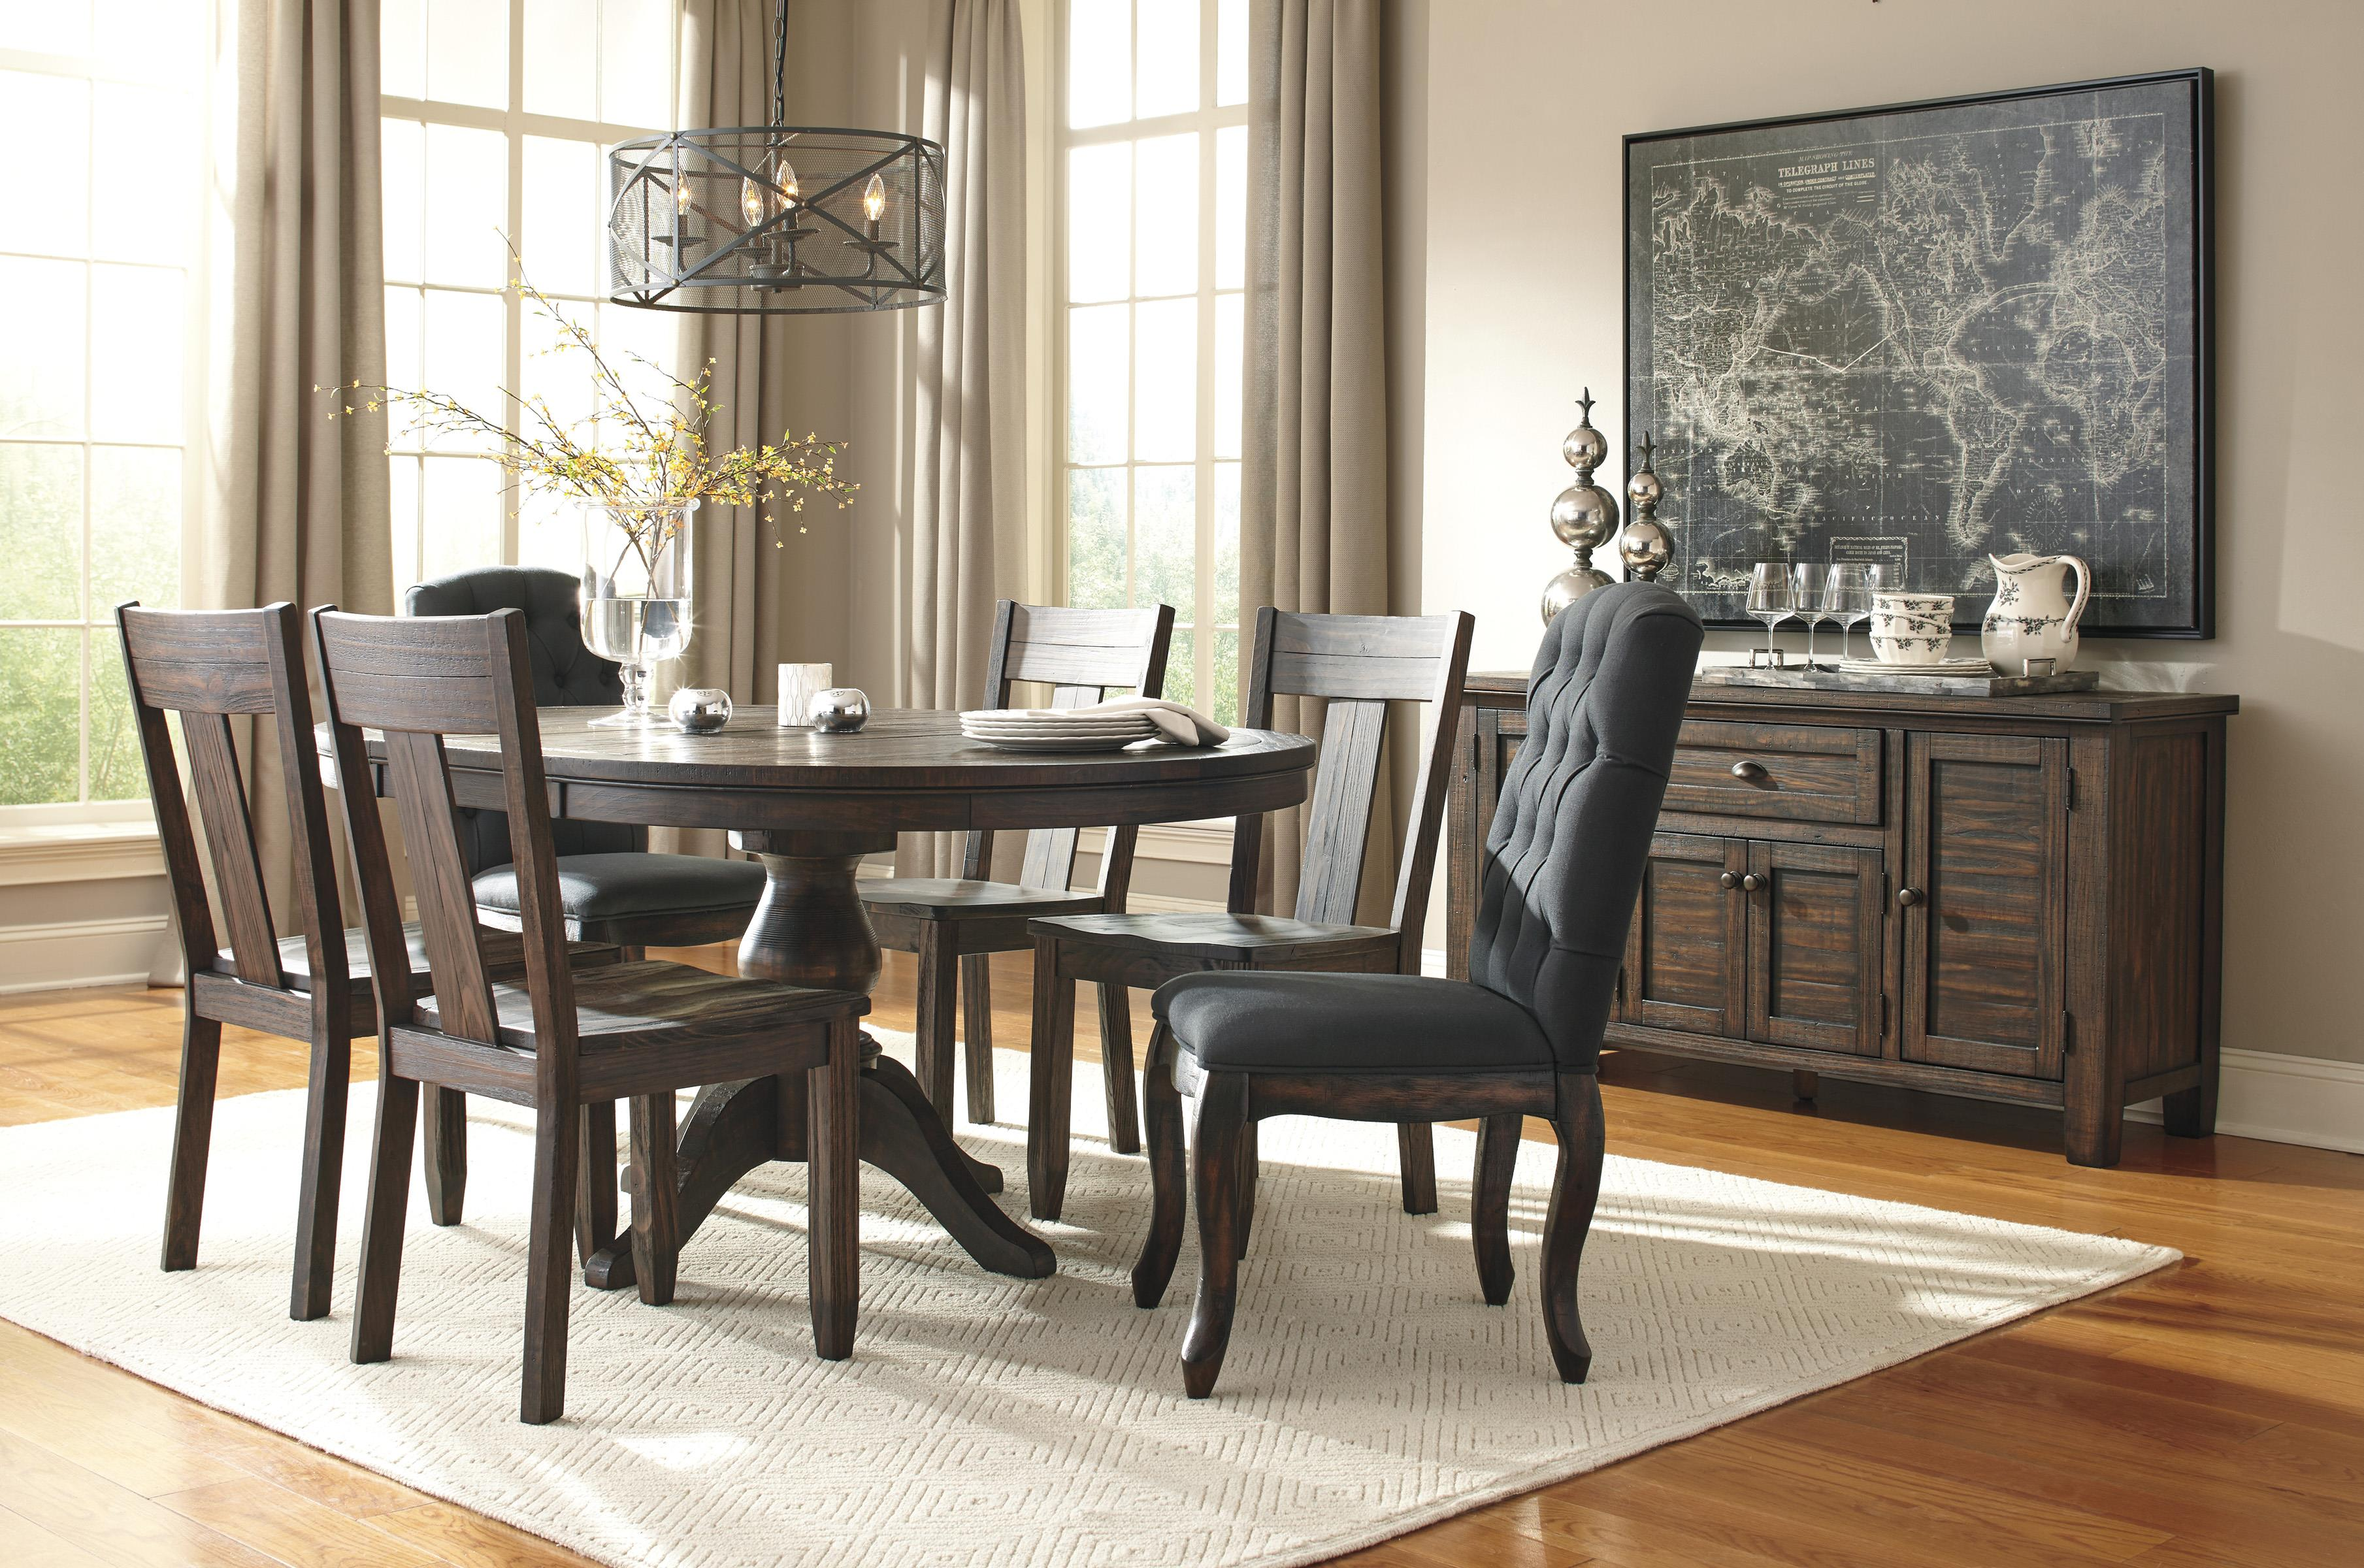 Ashley Signature Design Trudell Formal Dining Room Group   Rooms and     Ashley Signature Design Trudell Formal Dining Room Group   Item Number   D658 Dining Room Group